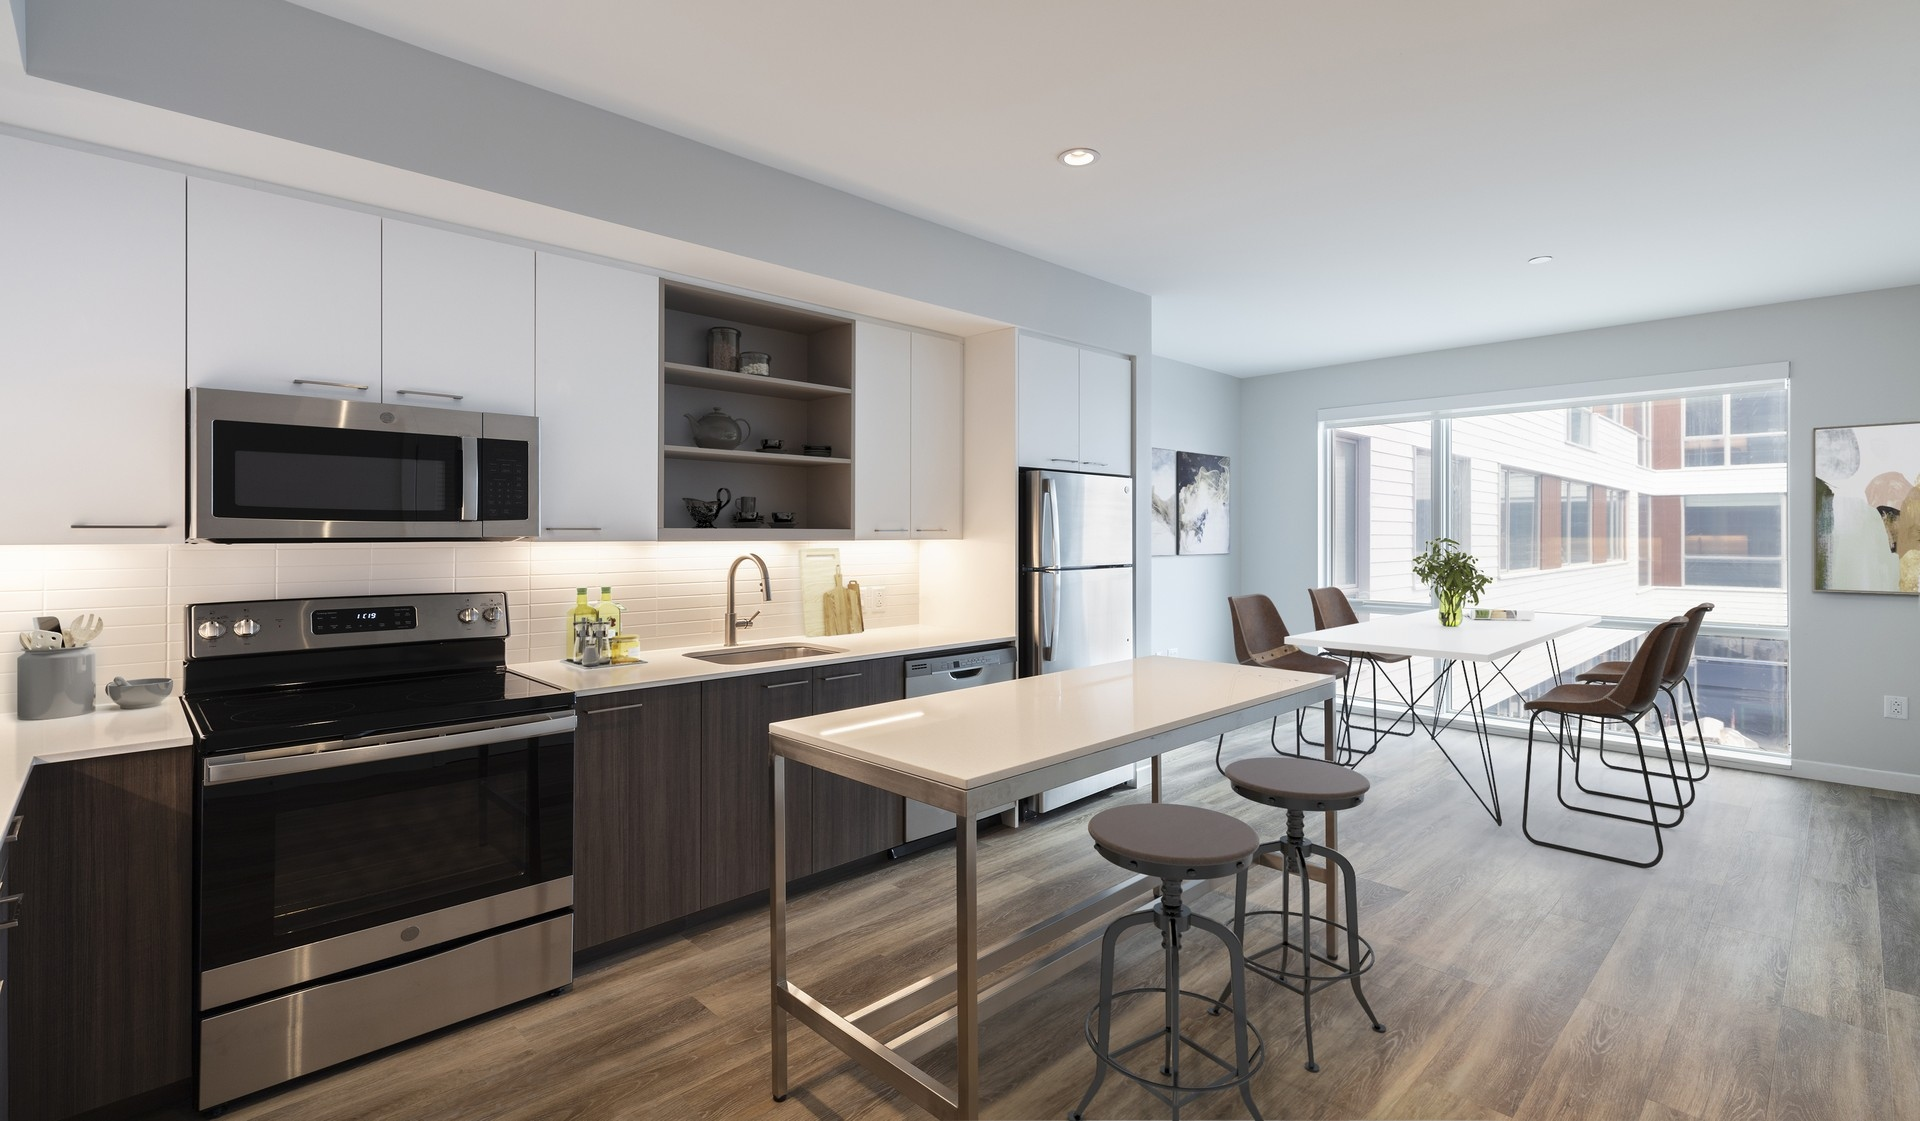 Prism - Kendall Square Apartments - Unit interior